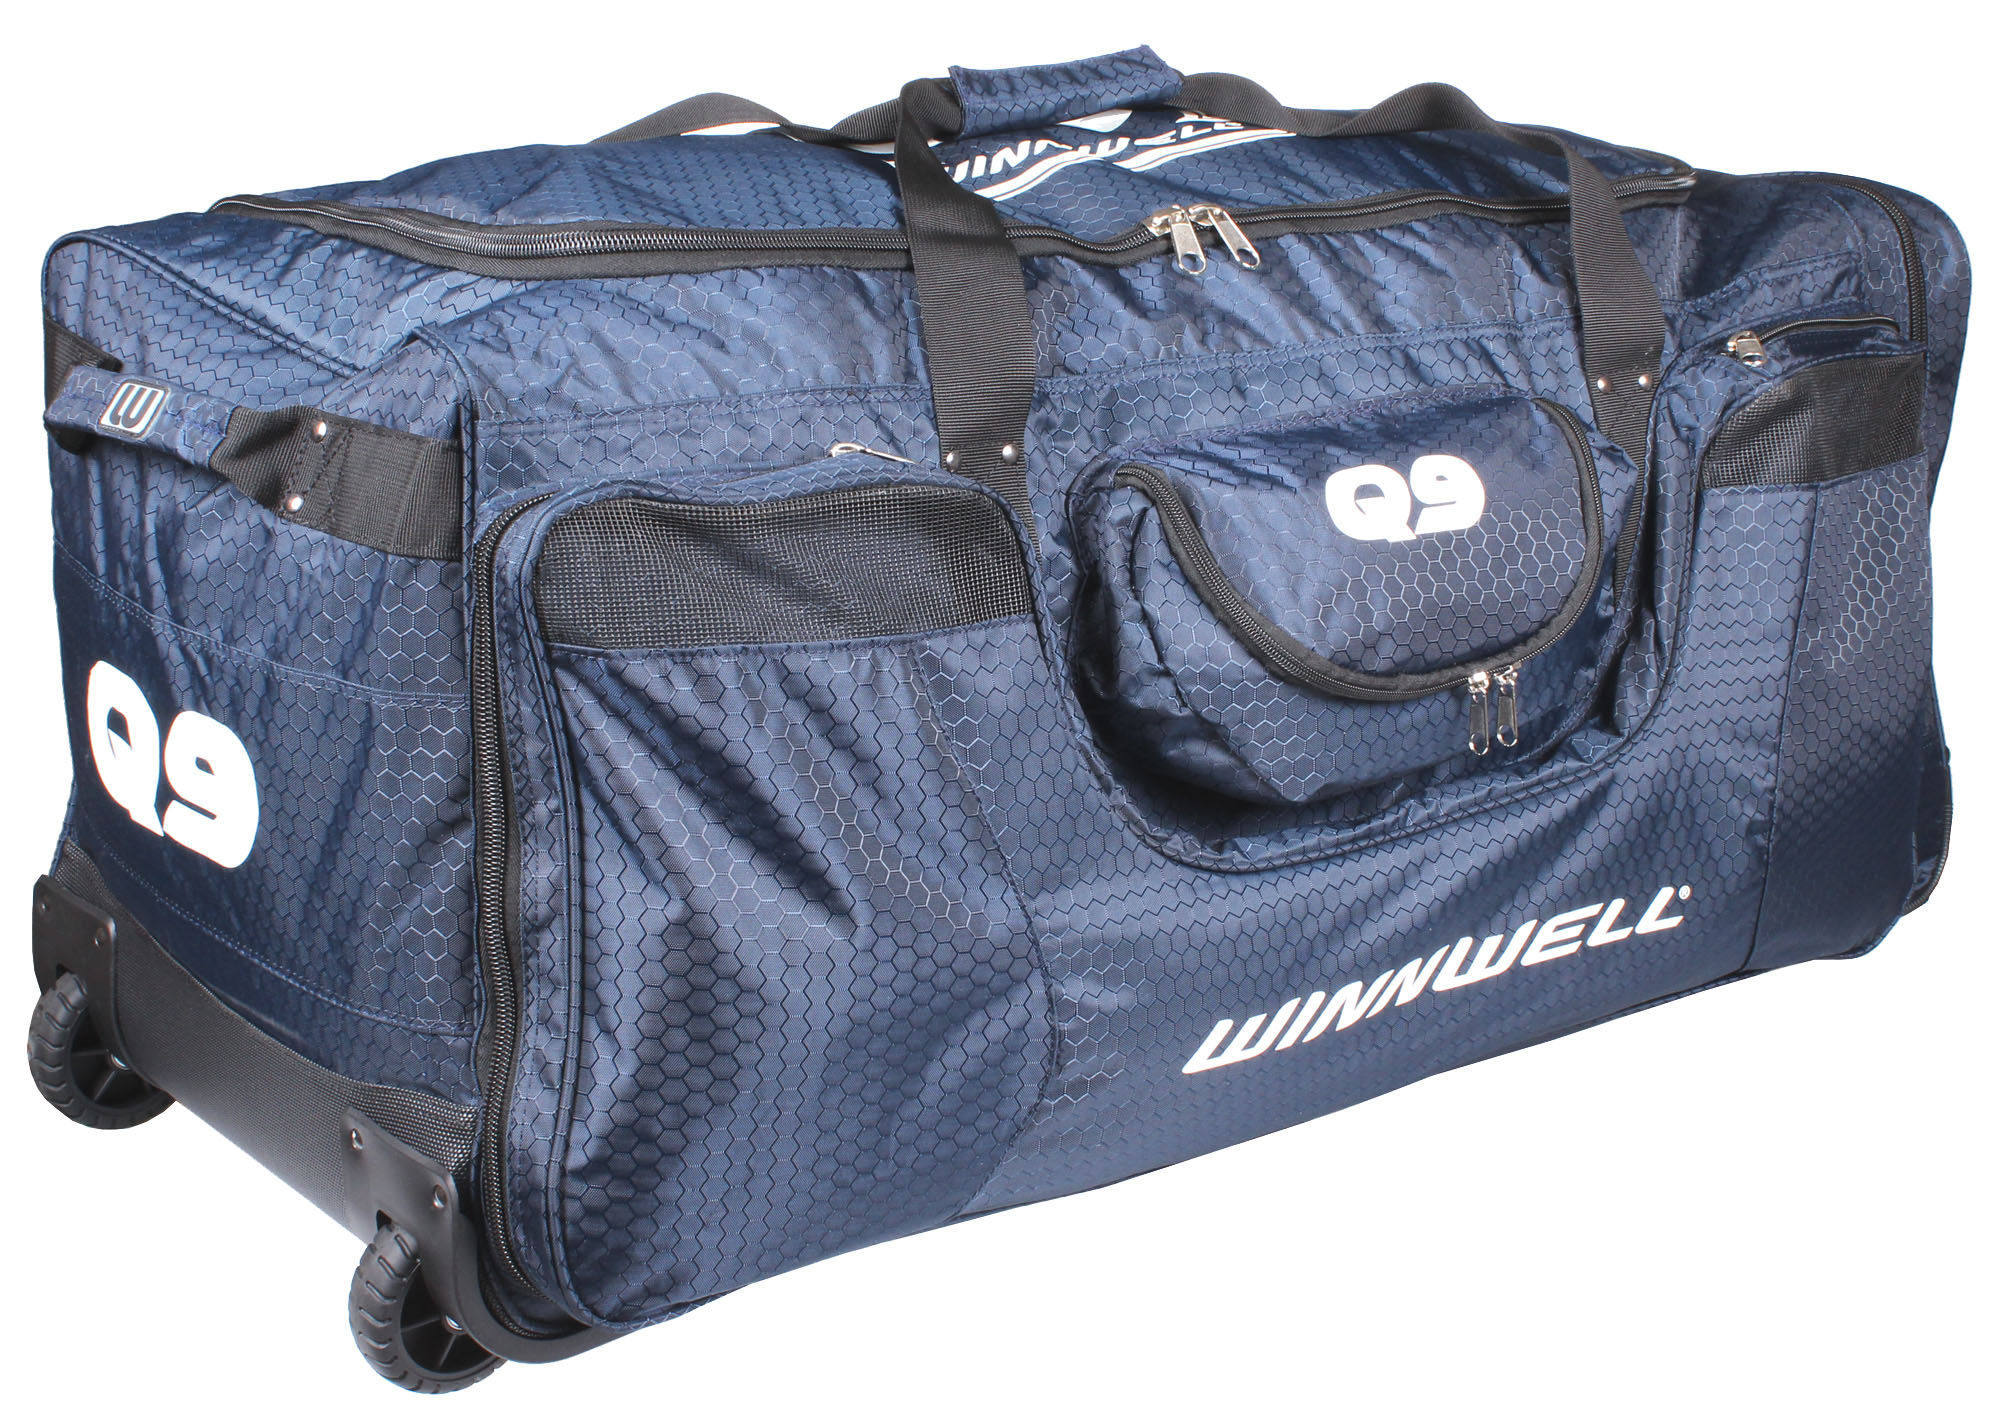 Taška Winnwell Q9 Wheel Bag JR. - blue